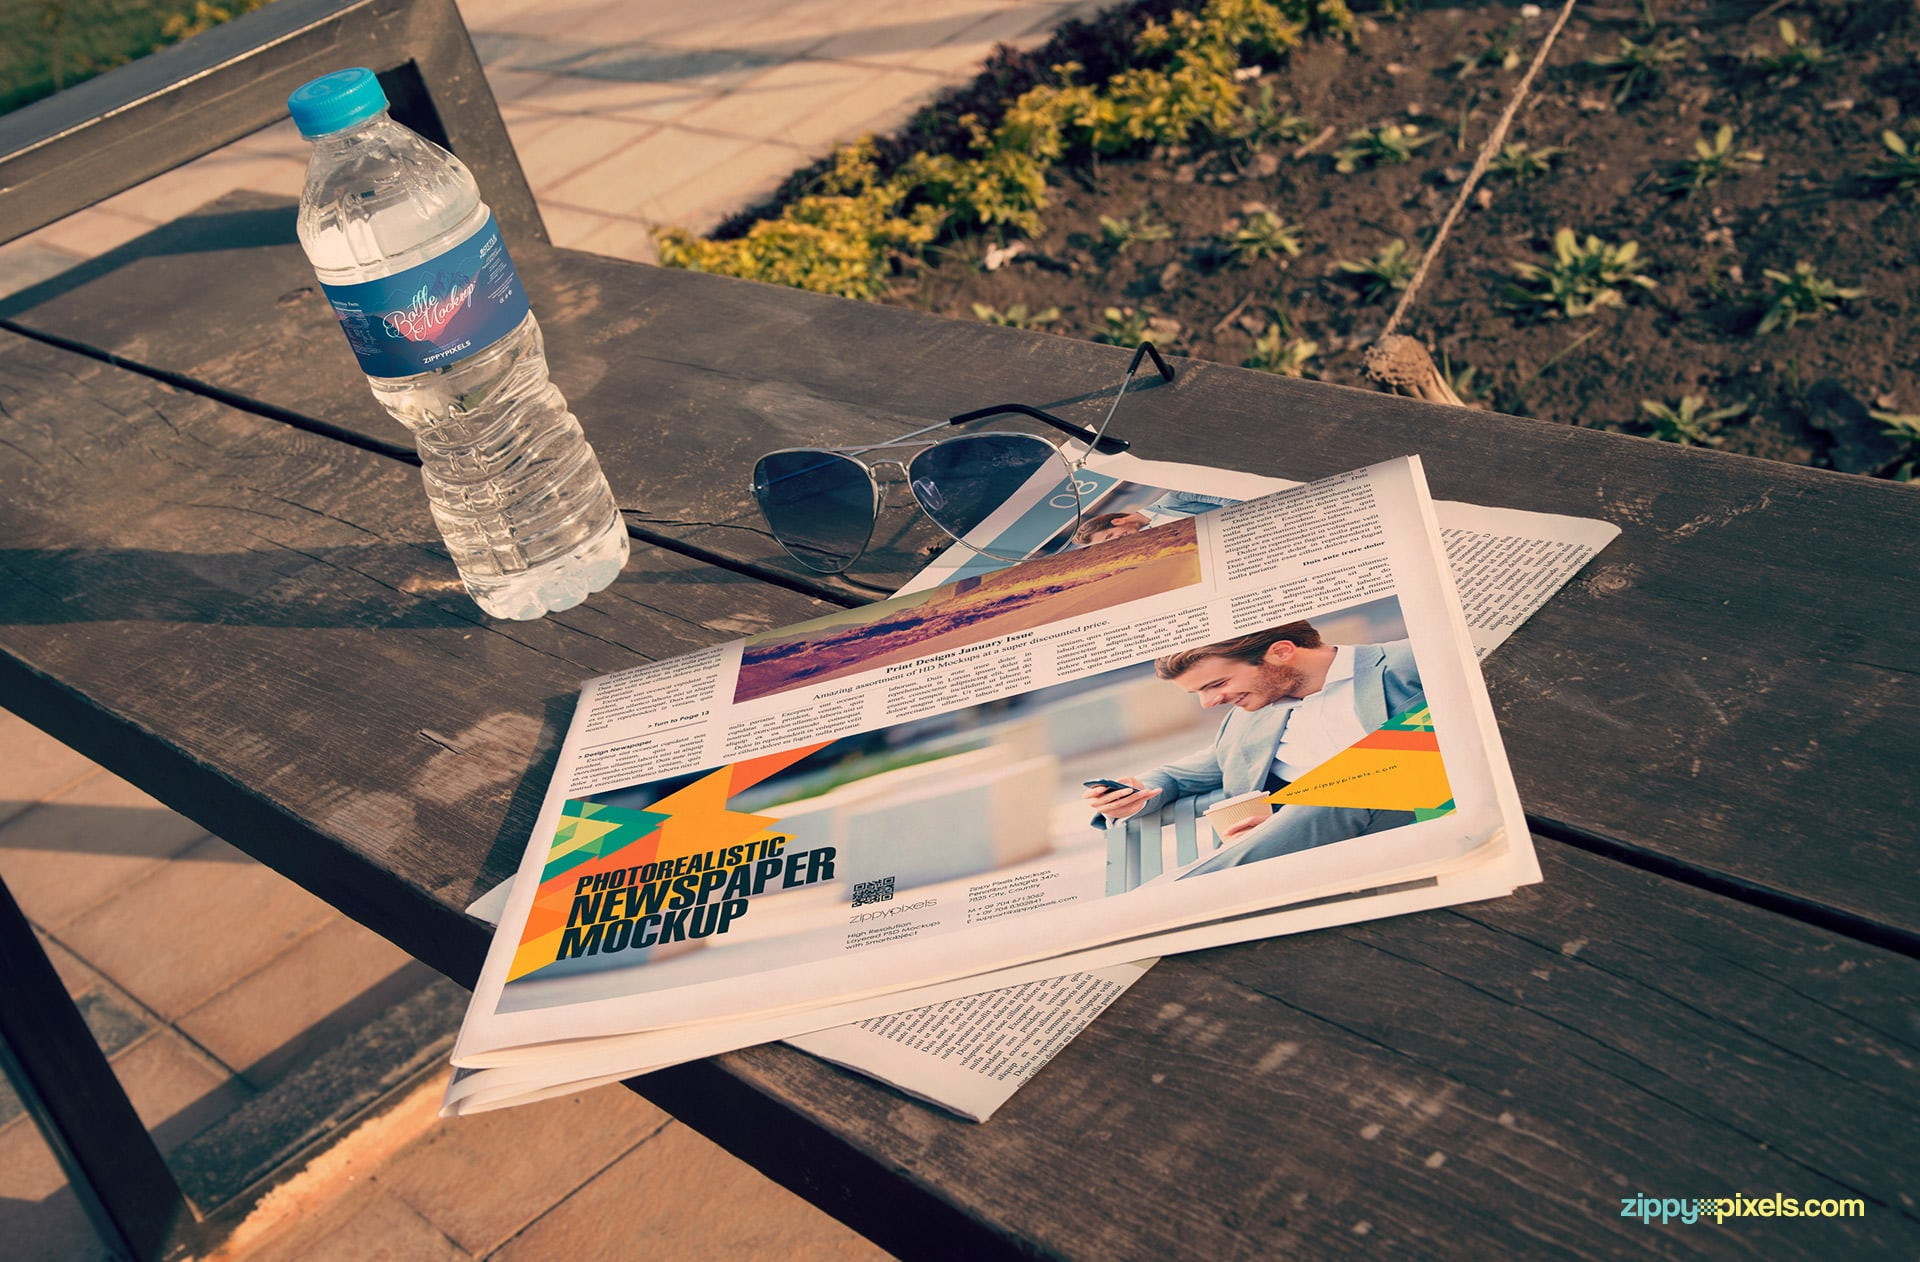 Advertising newspaper mockup - 2 half folded newspaper & water bottle lying on bench in garden